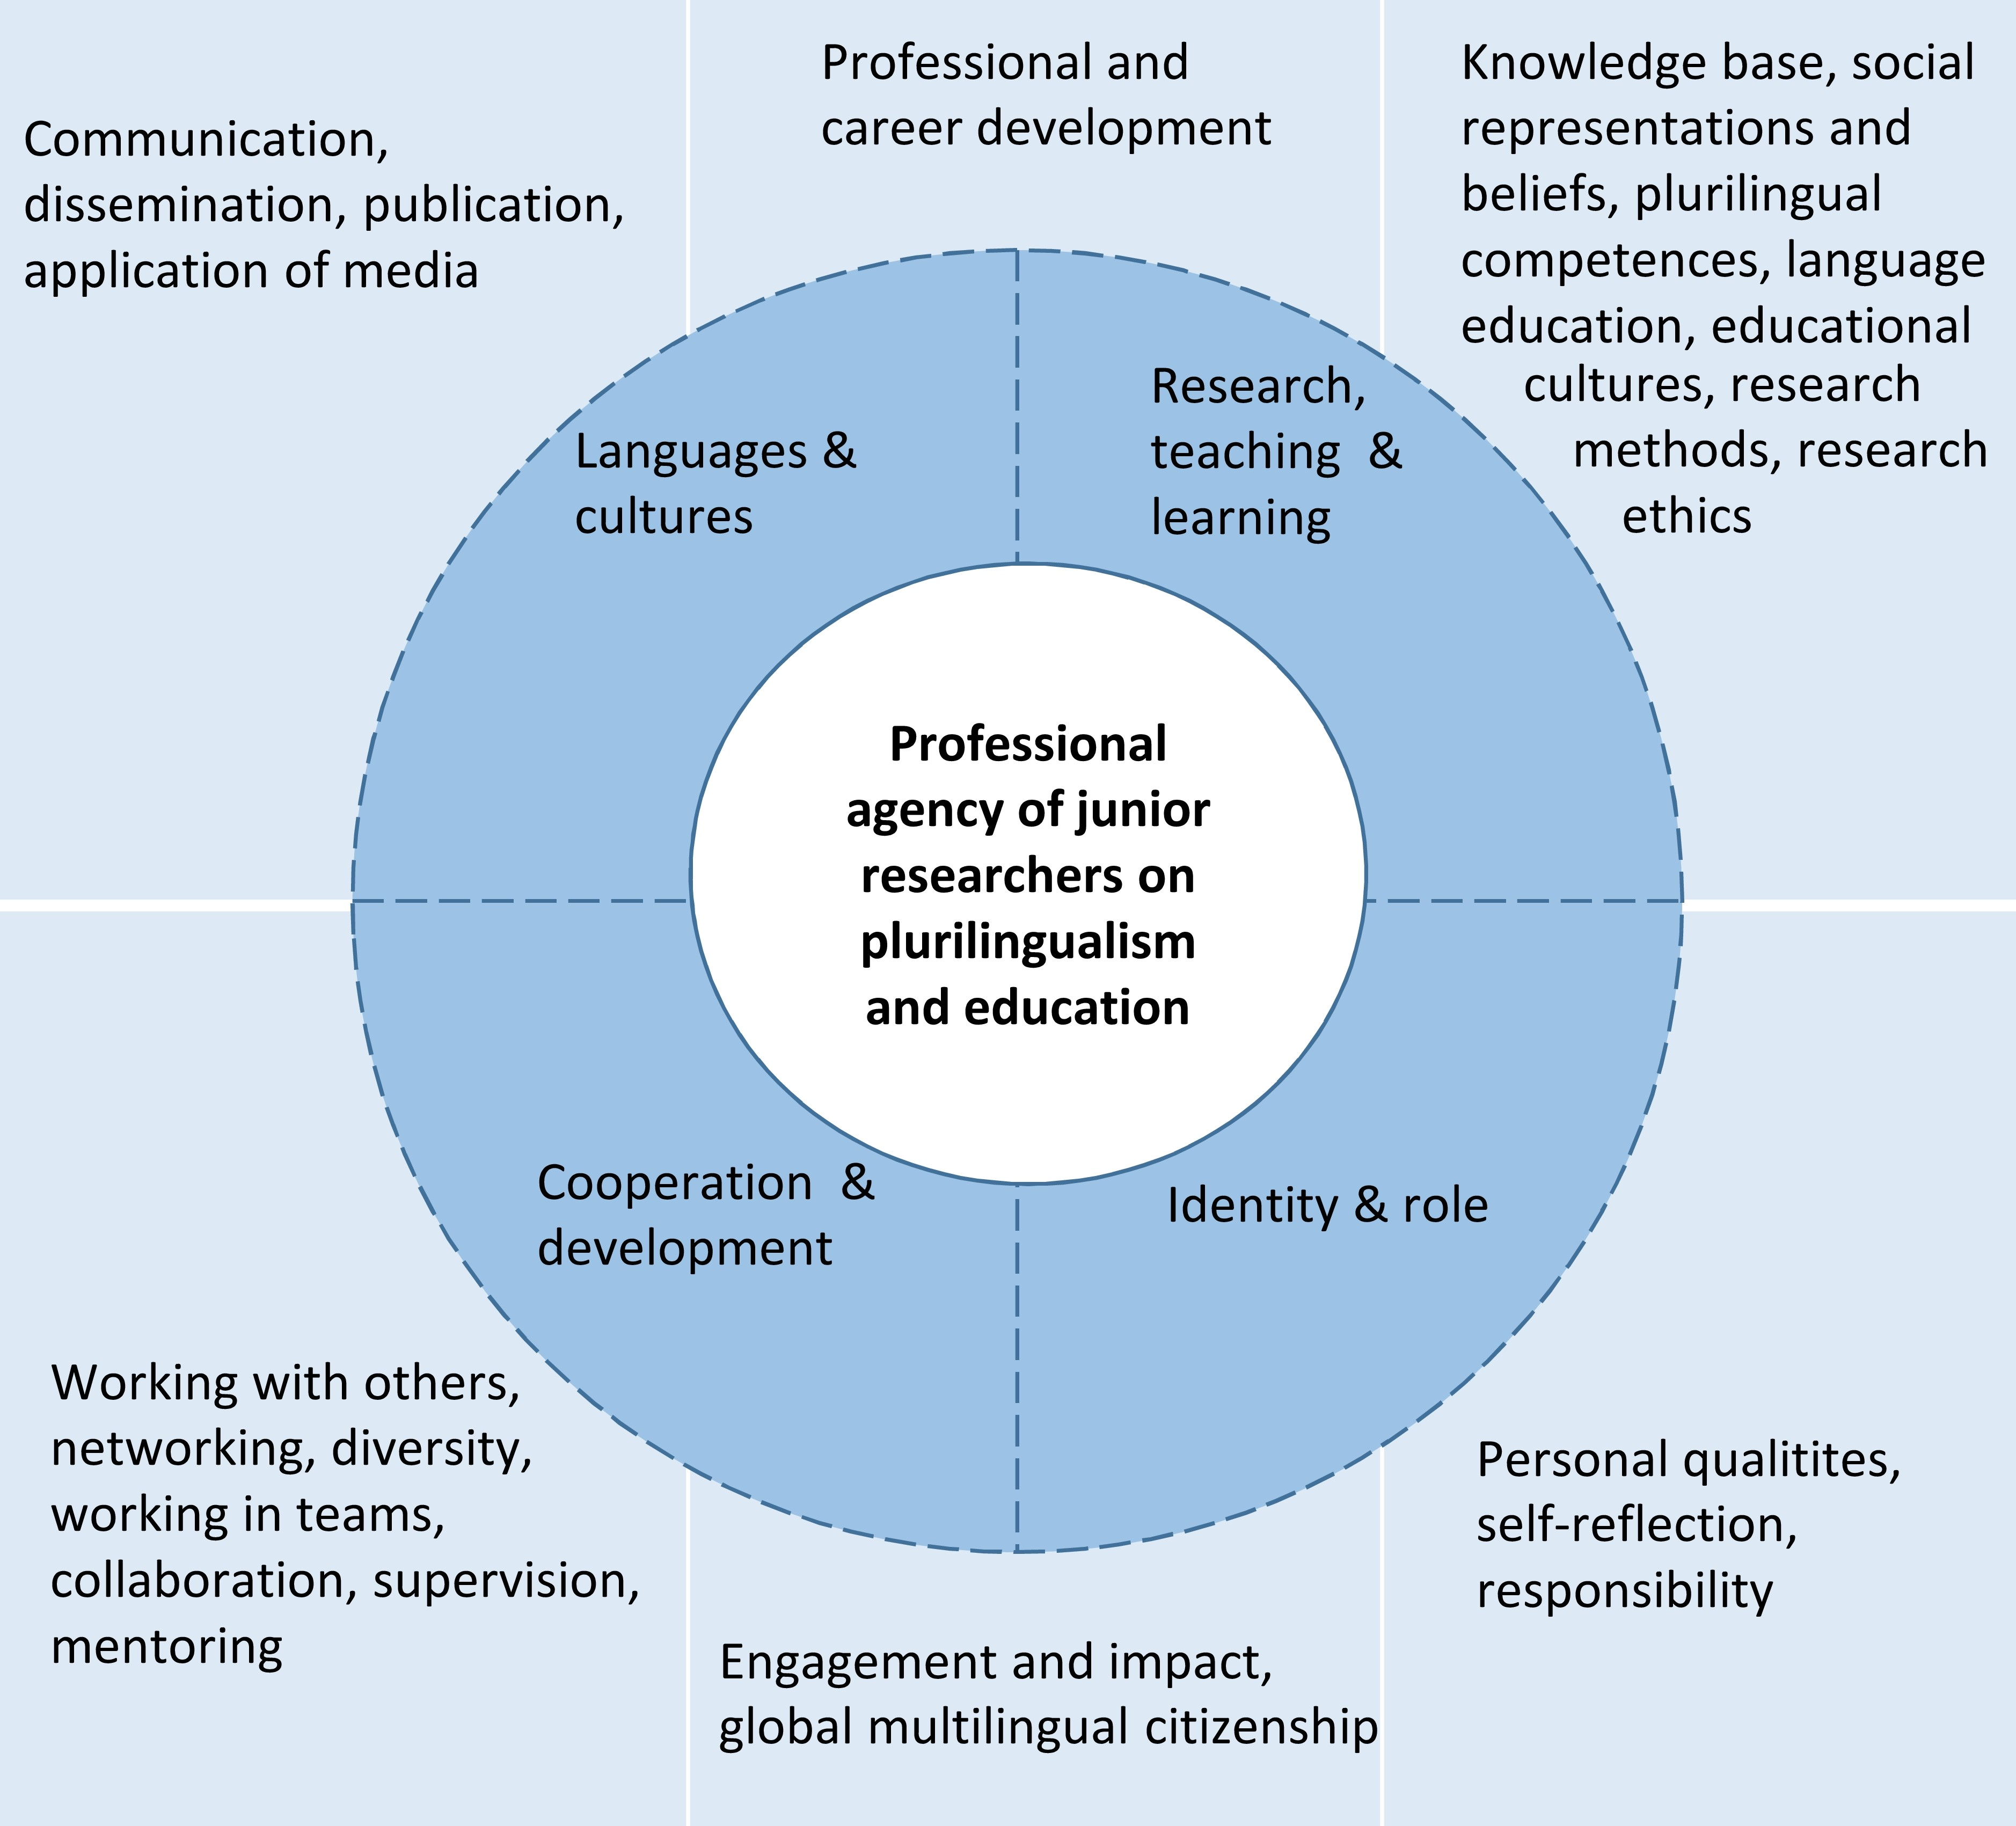 ENROPE competency model